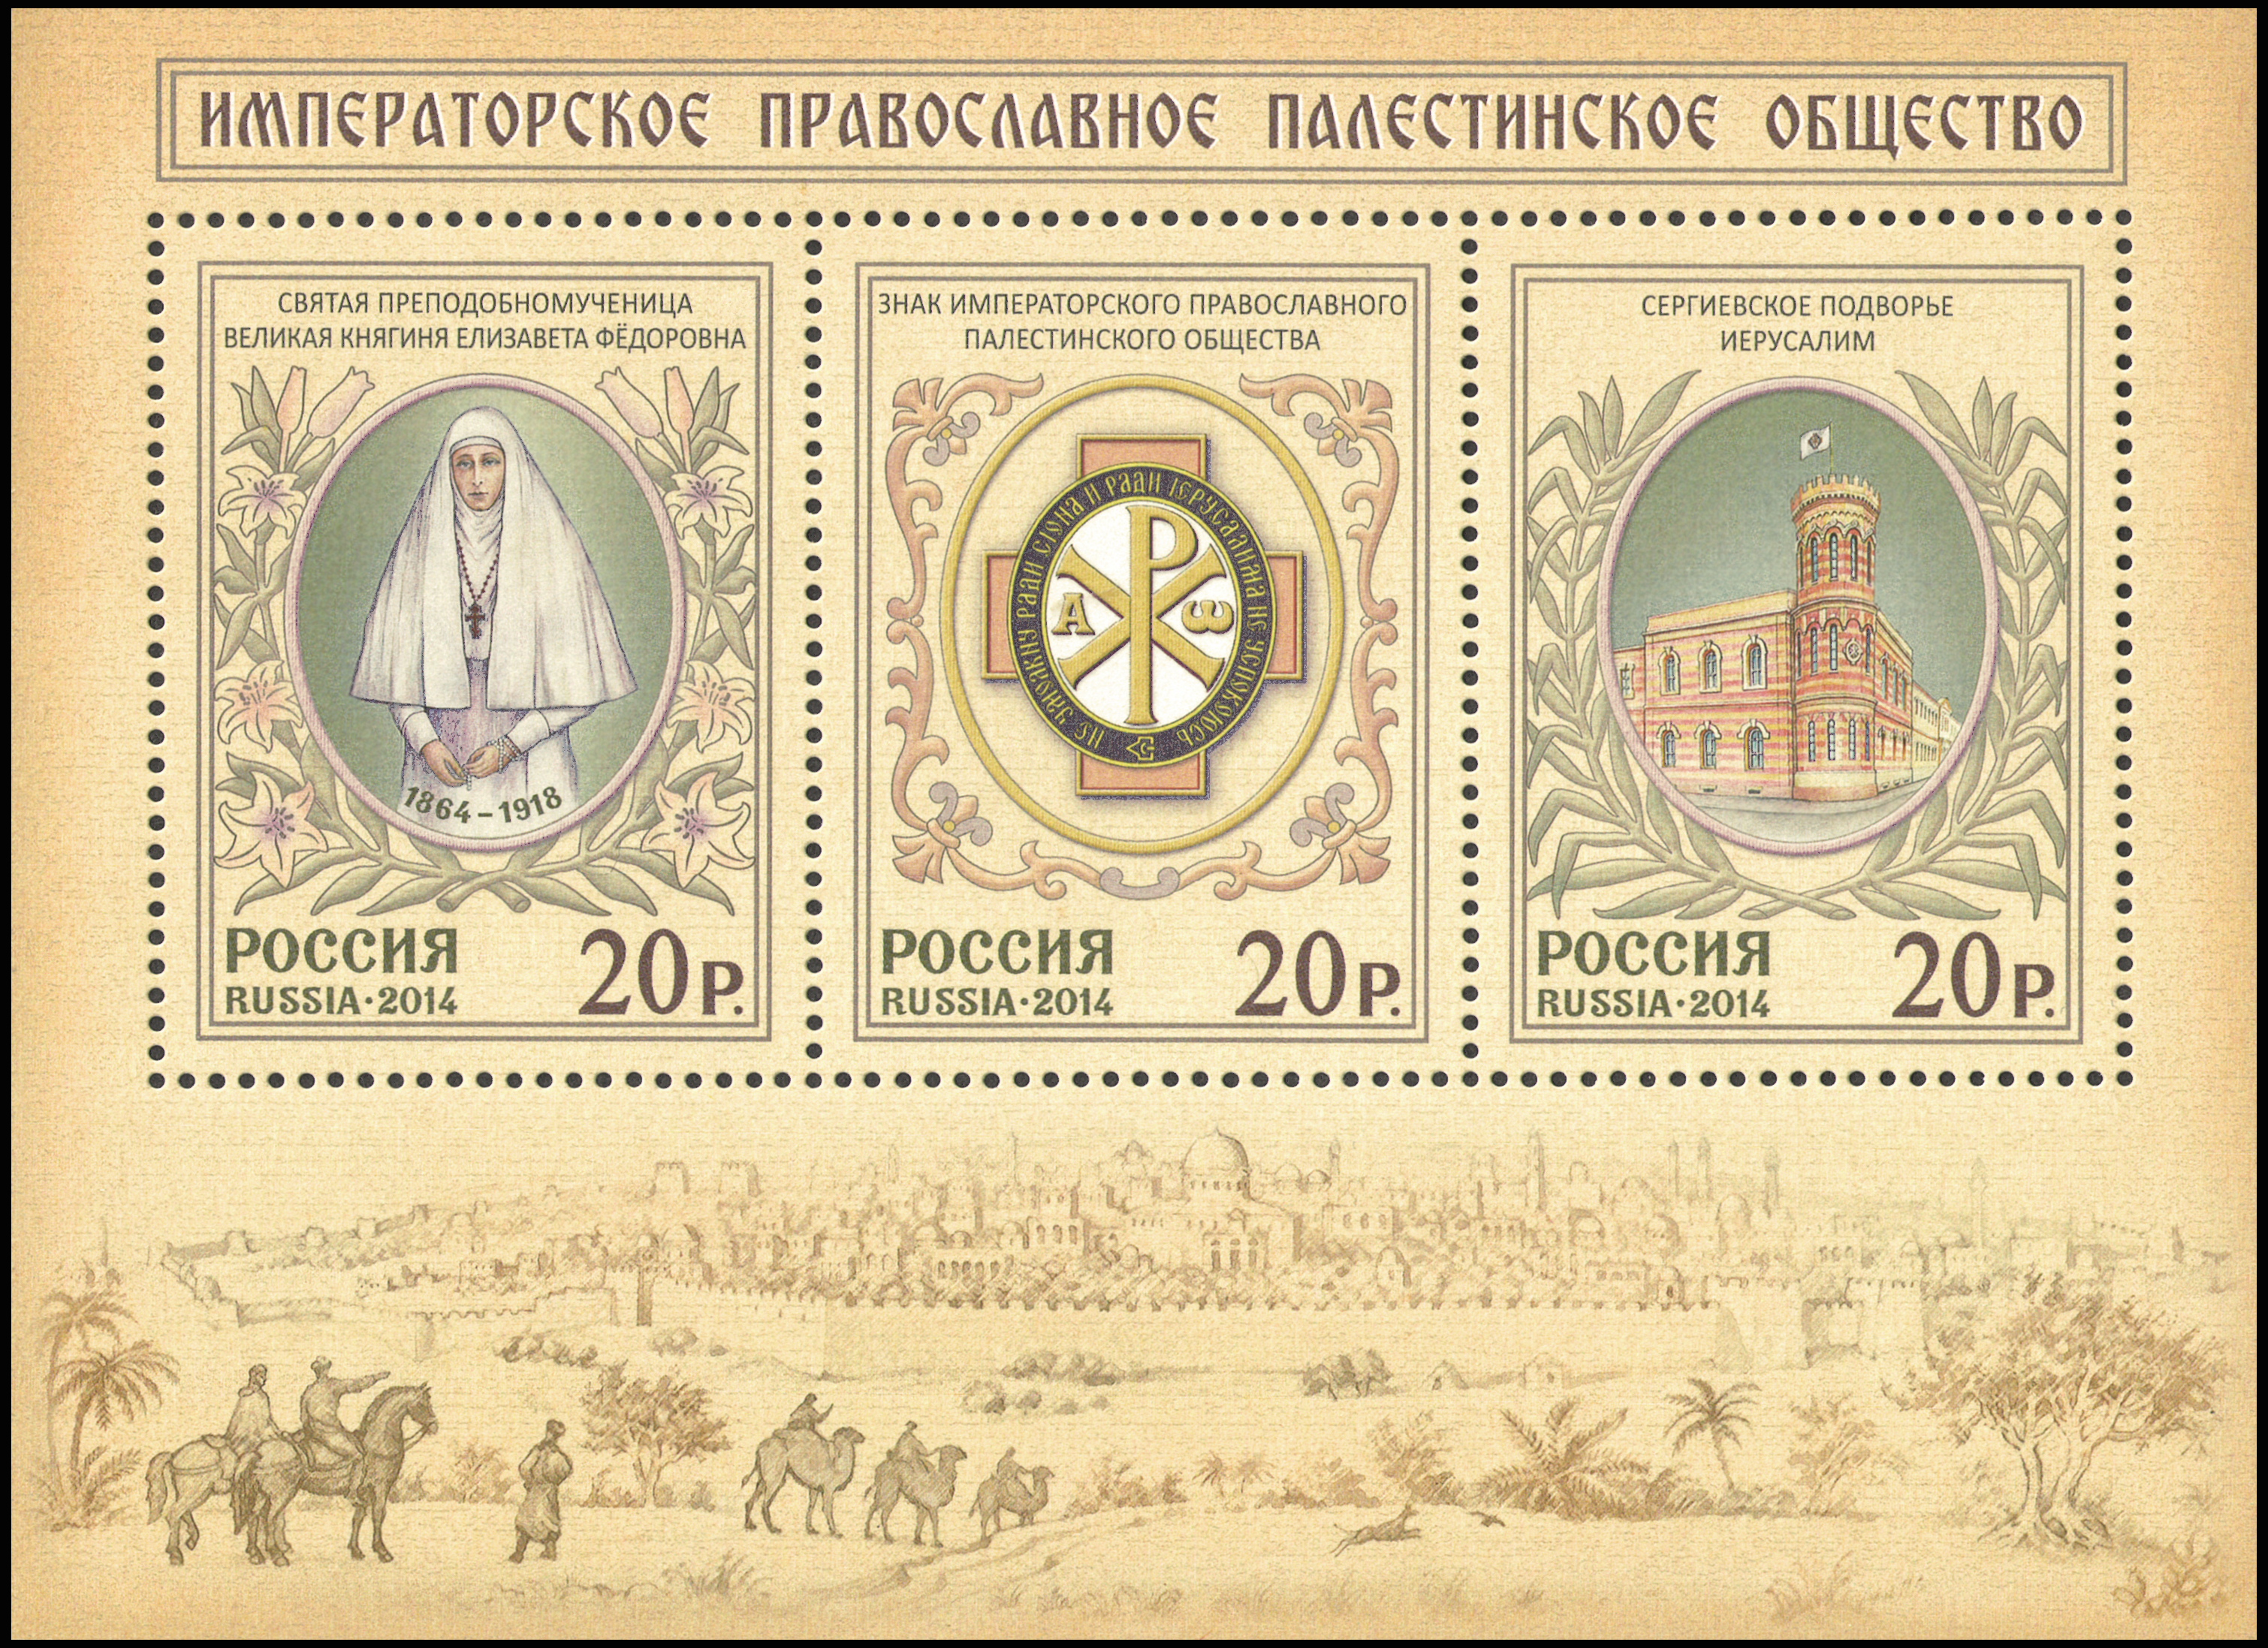 File:Stamps of Russia 2014 No 1885-1887 Imperial Orthodox Palestine